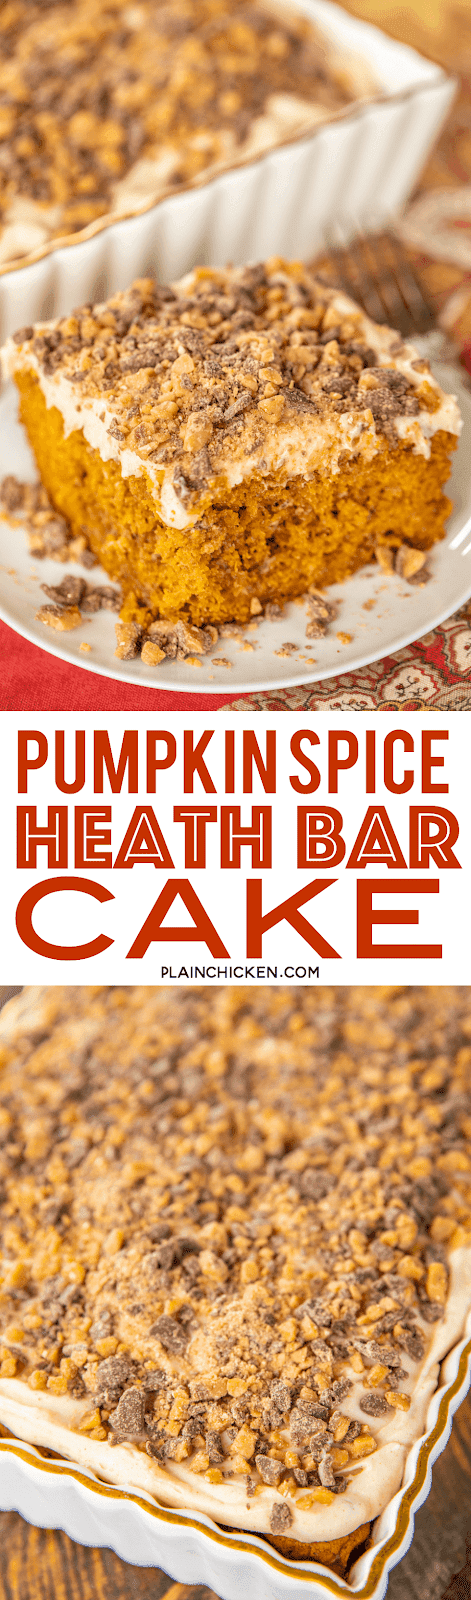 Pumpkin Spice Heath Bar Cake - OMG! This cake is to-die-for!!! Even pumpkin haters can't resist this delicious cake! Pumpkin Spice Toffee cake with homemade cream cheese frosting and topped with more toffee bits! YUM!!! Spice cake mix, pumpkin, pumpkin spice, sour cream, oil, eggs, milk, sugar, cream cheese, vanilla, butter, powdered sugar, toffee bits. Can make ahead of time and refrigerate until ready to serve. Great for potlucks and holiday meals! #pumpkin #dessert #cake #pumpkinspice #toffee